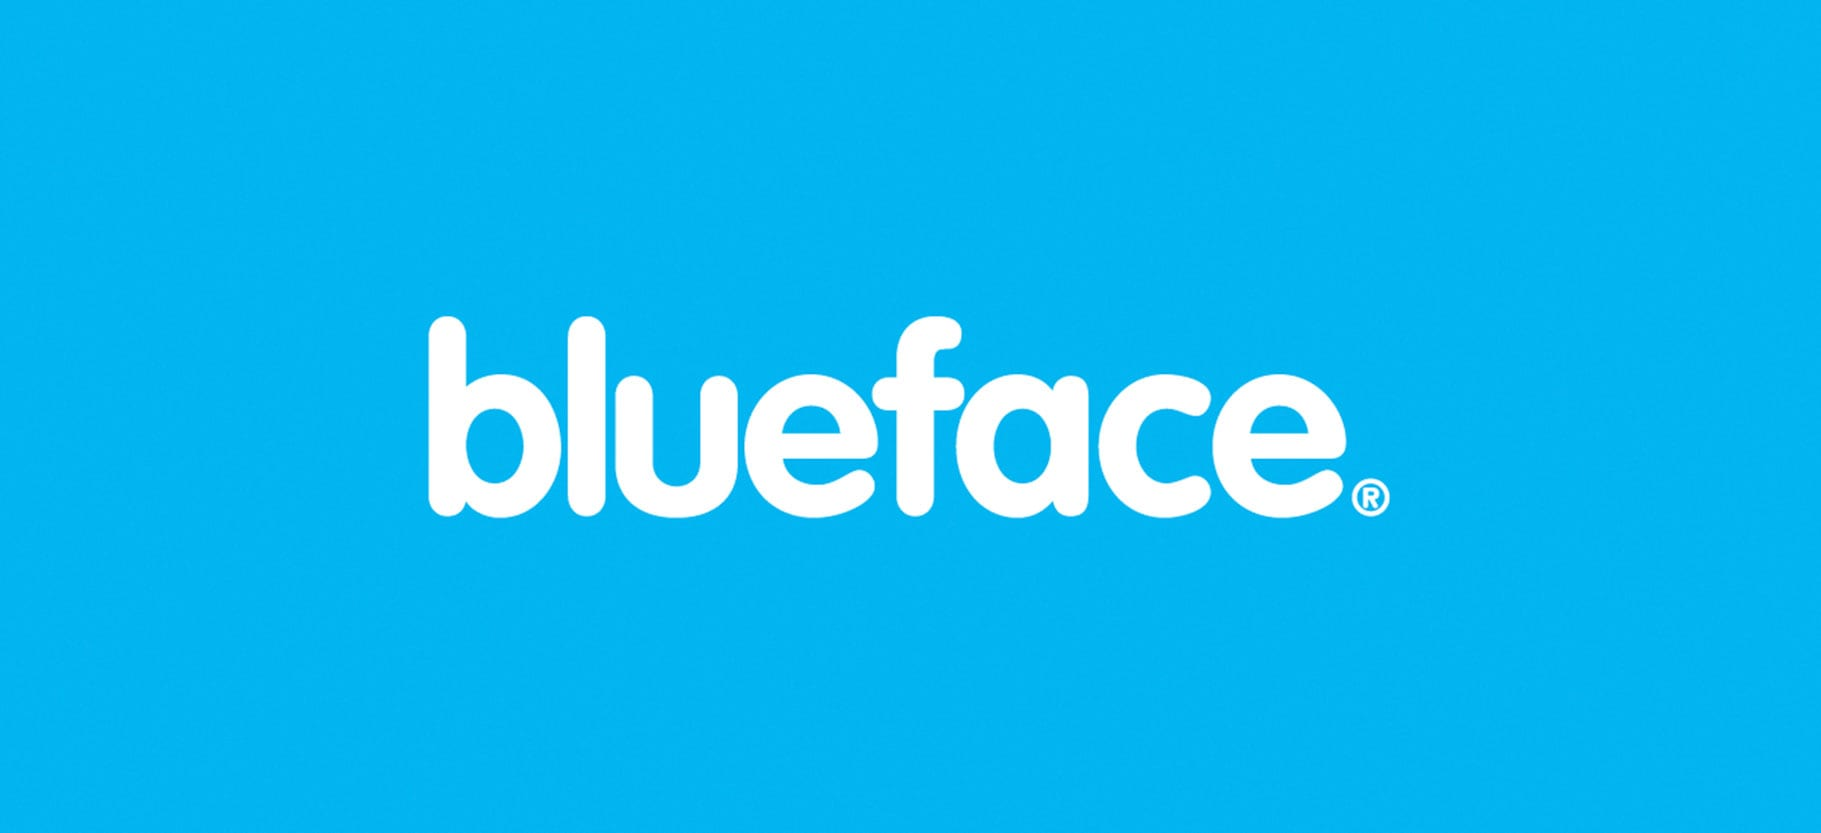 Media release: Blueface wins 2017 Internet Telephony Product of the Year Award